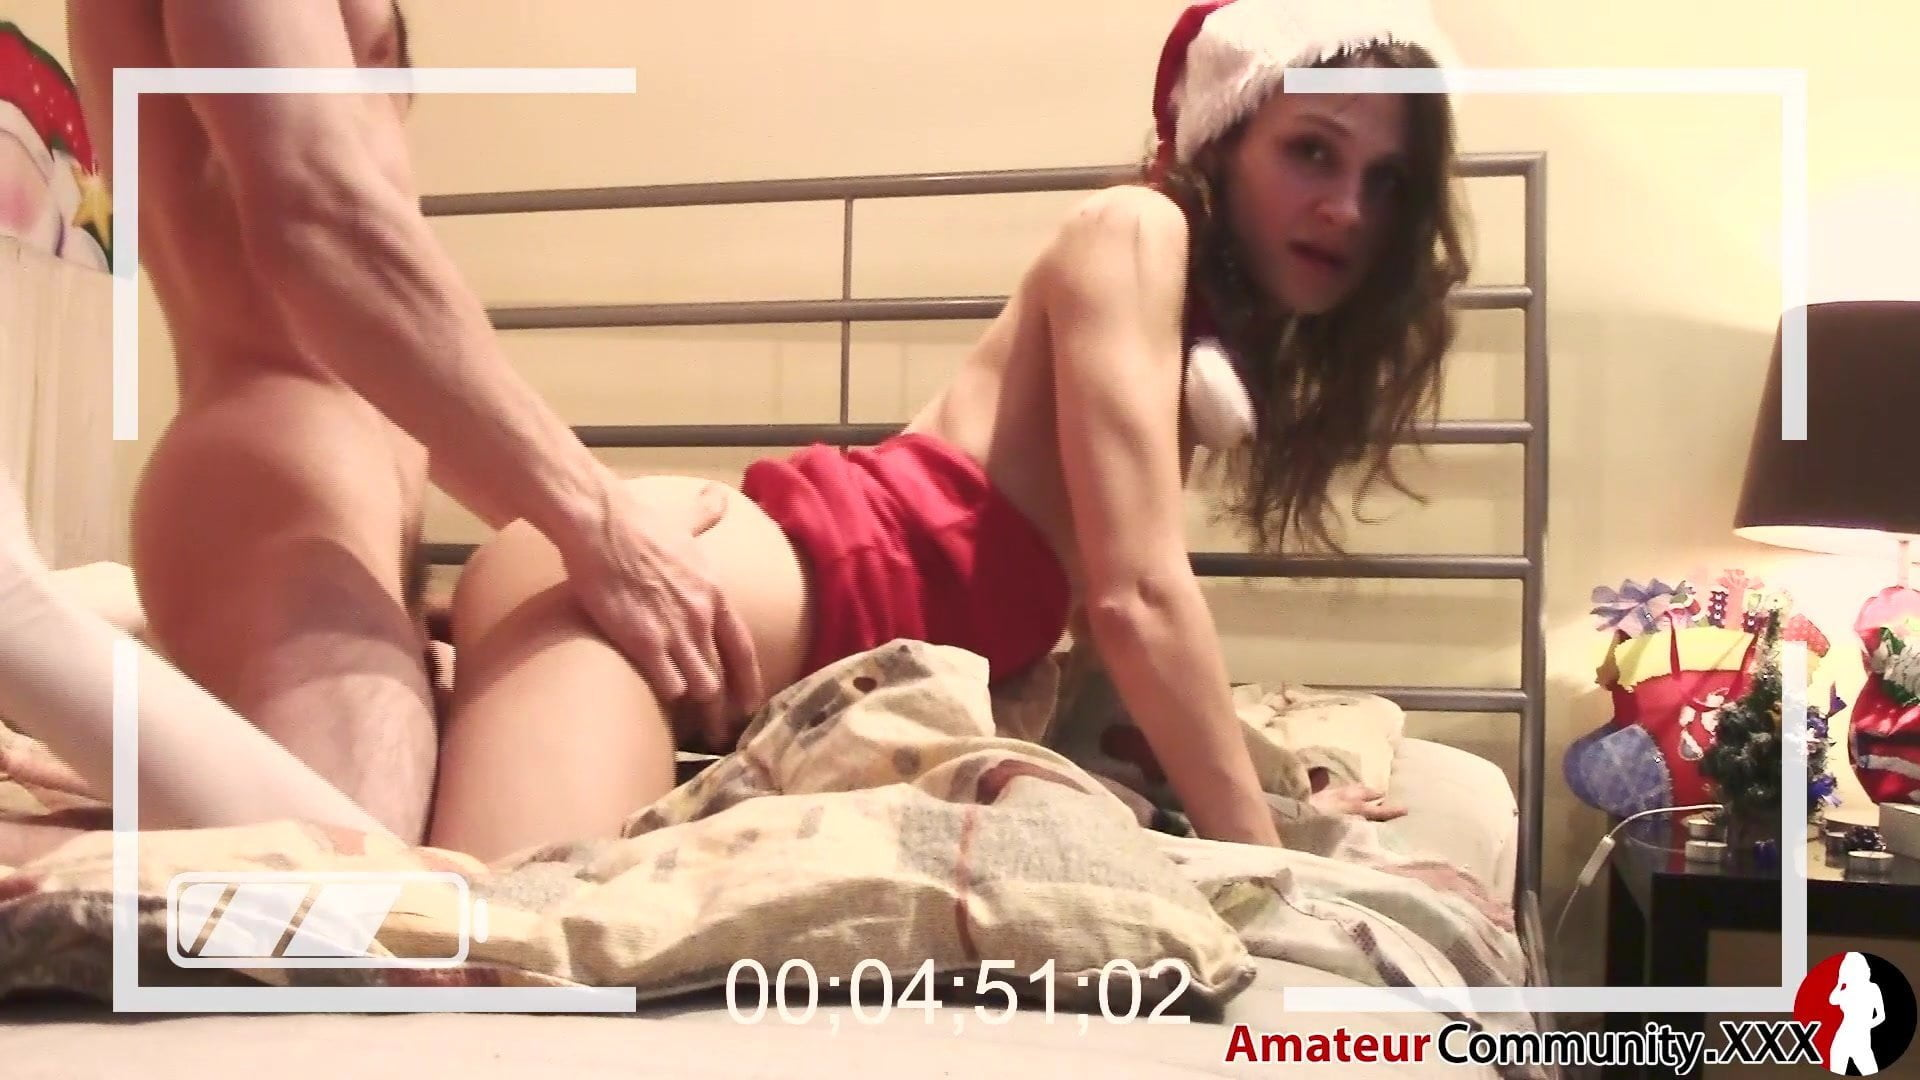 I fuck my Ex on Christmas … haha amateurcommunityXXX